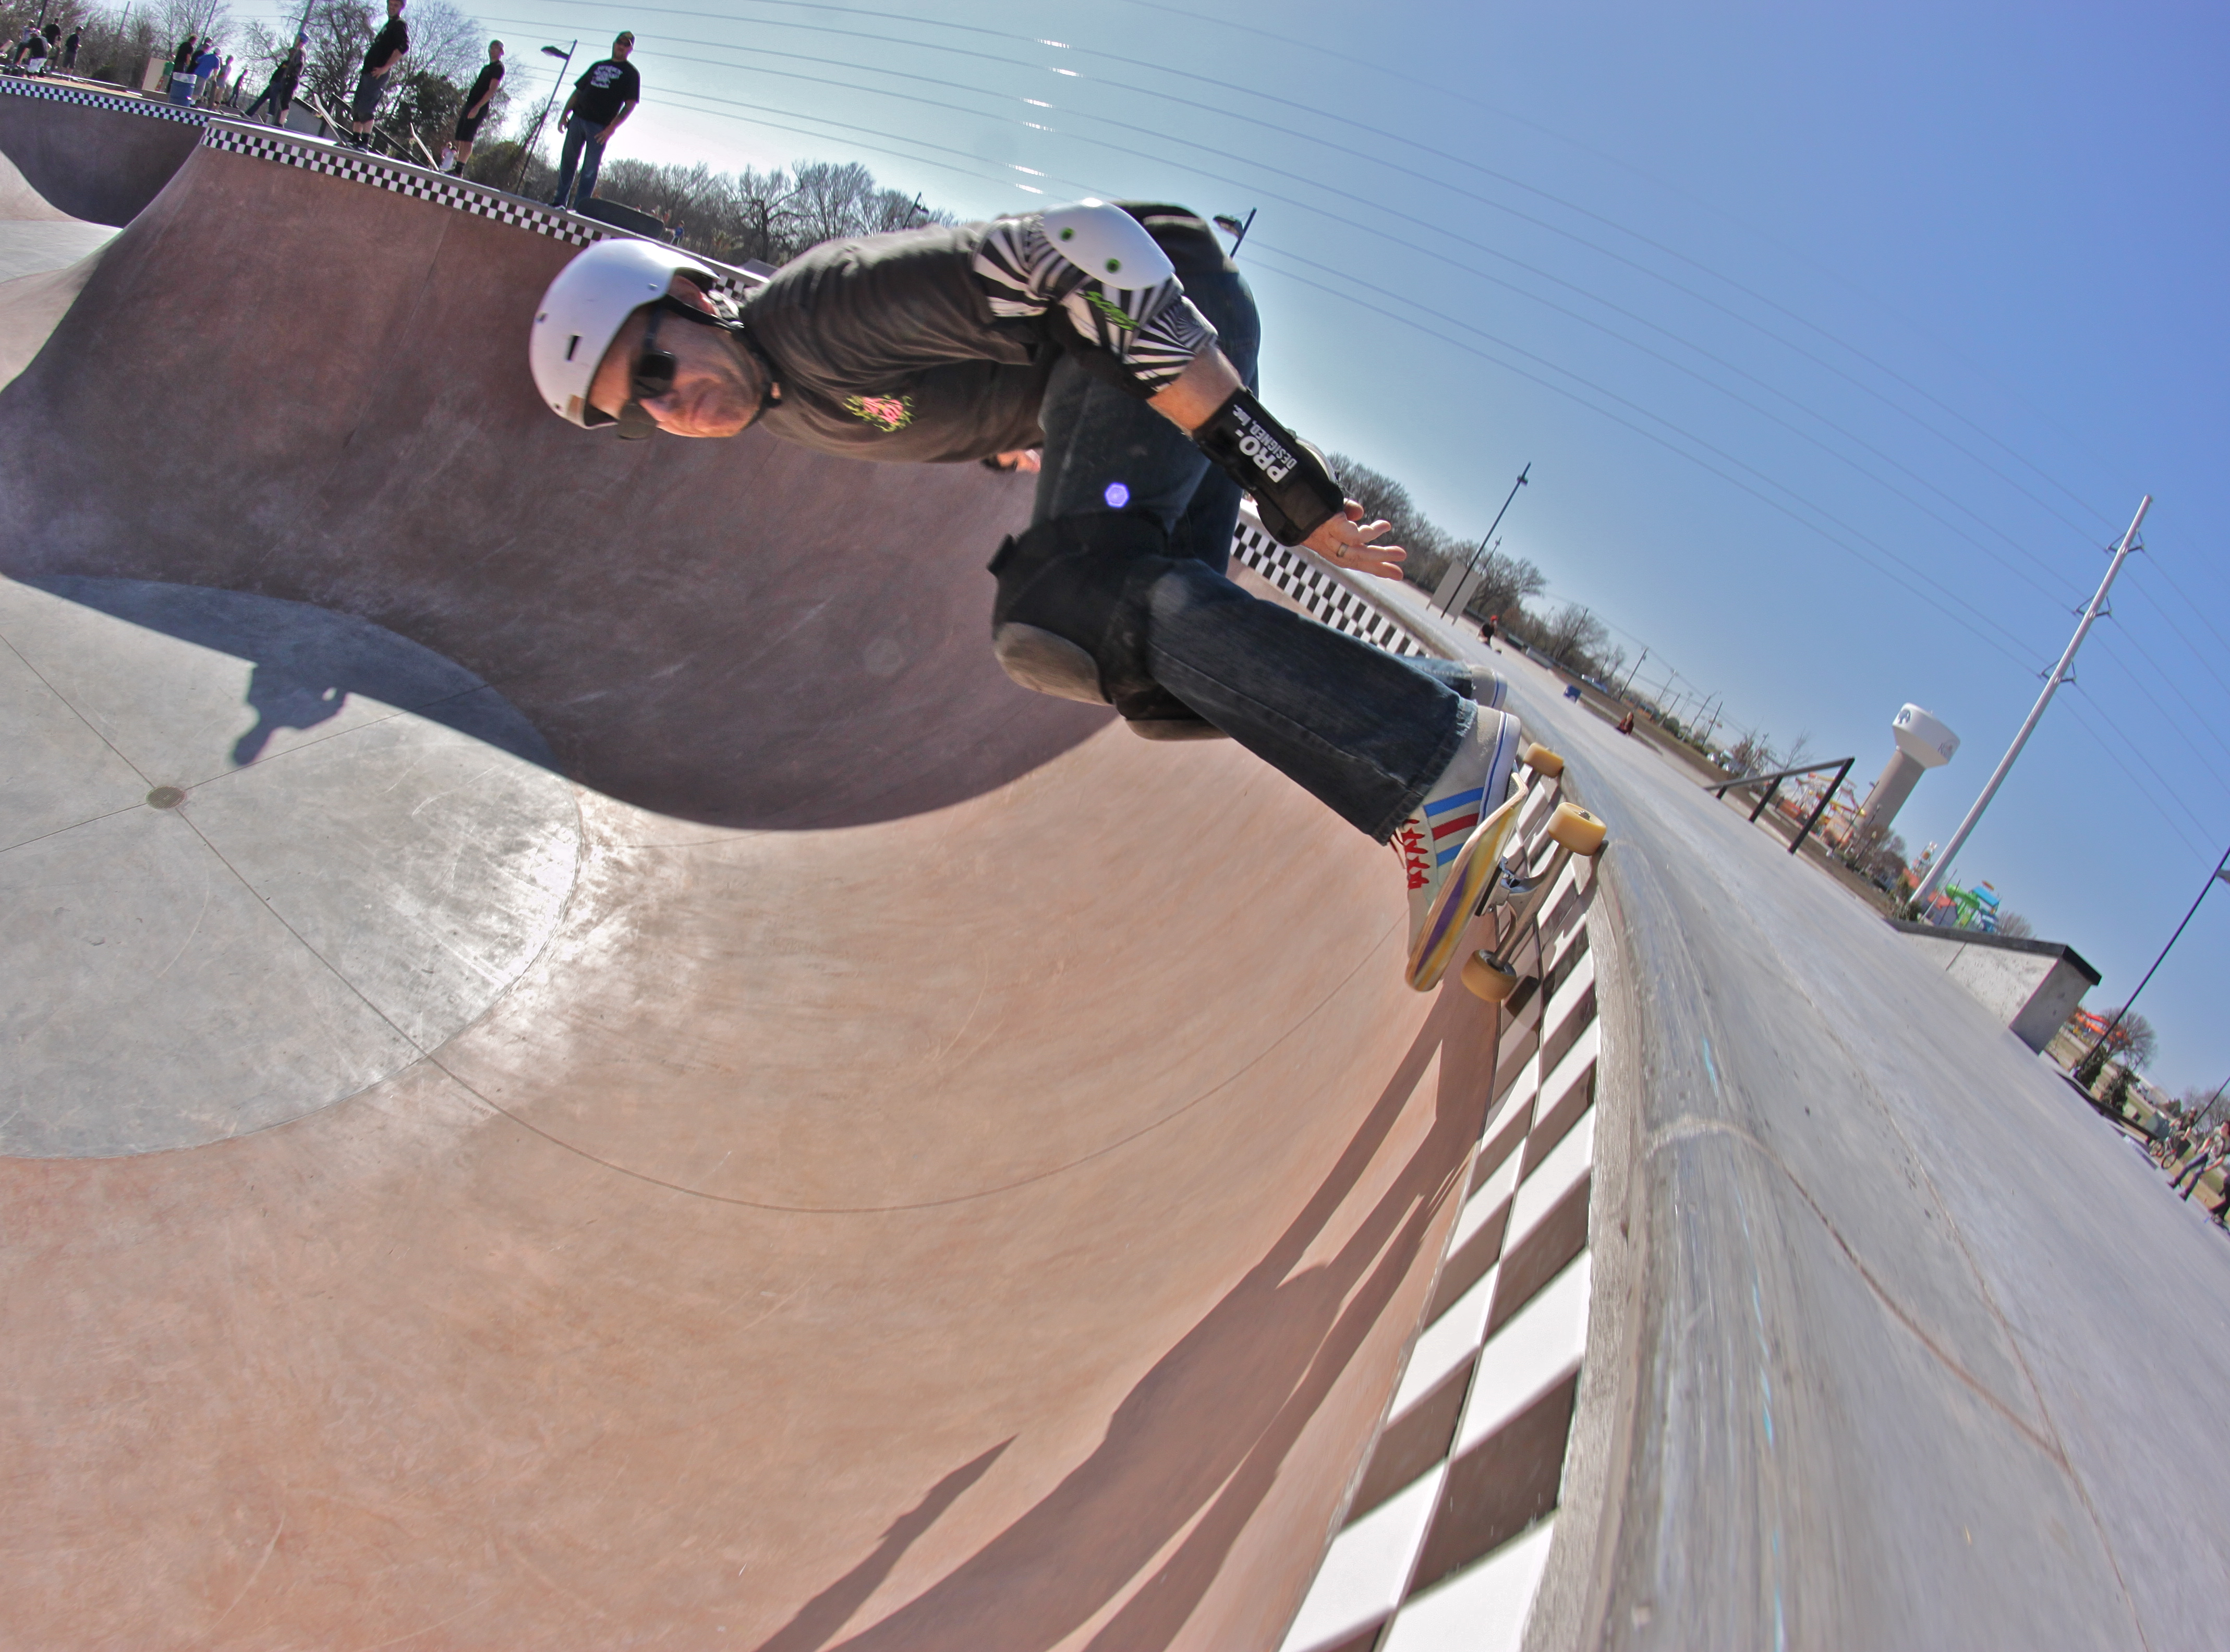 Eric Eley Photo by SK8DFW